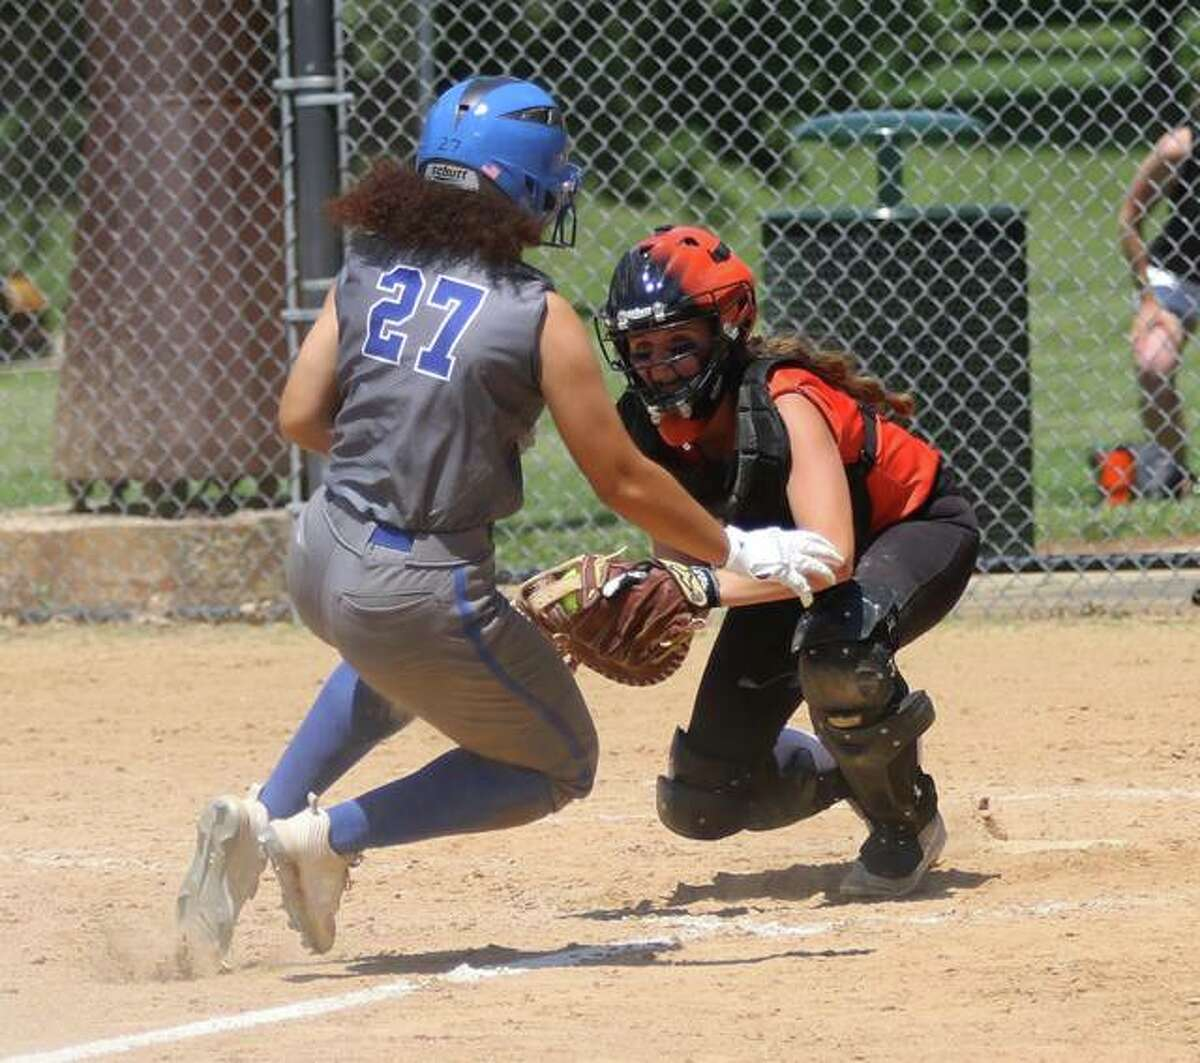 Gilliespie catcher Hannah Barrett (right) braces to put the tag on Jalynn Dickson for an out at the plate Saturday in a Class 2A regional title game at Moore Park in Alton.